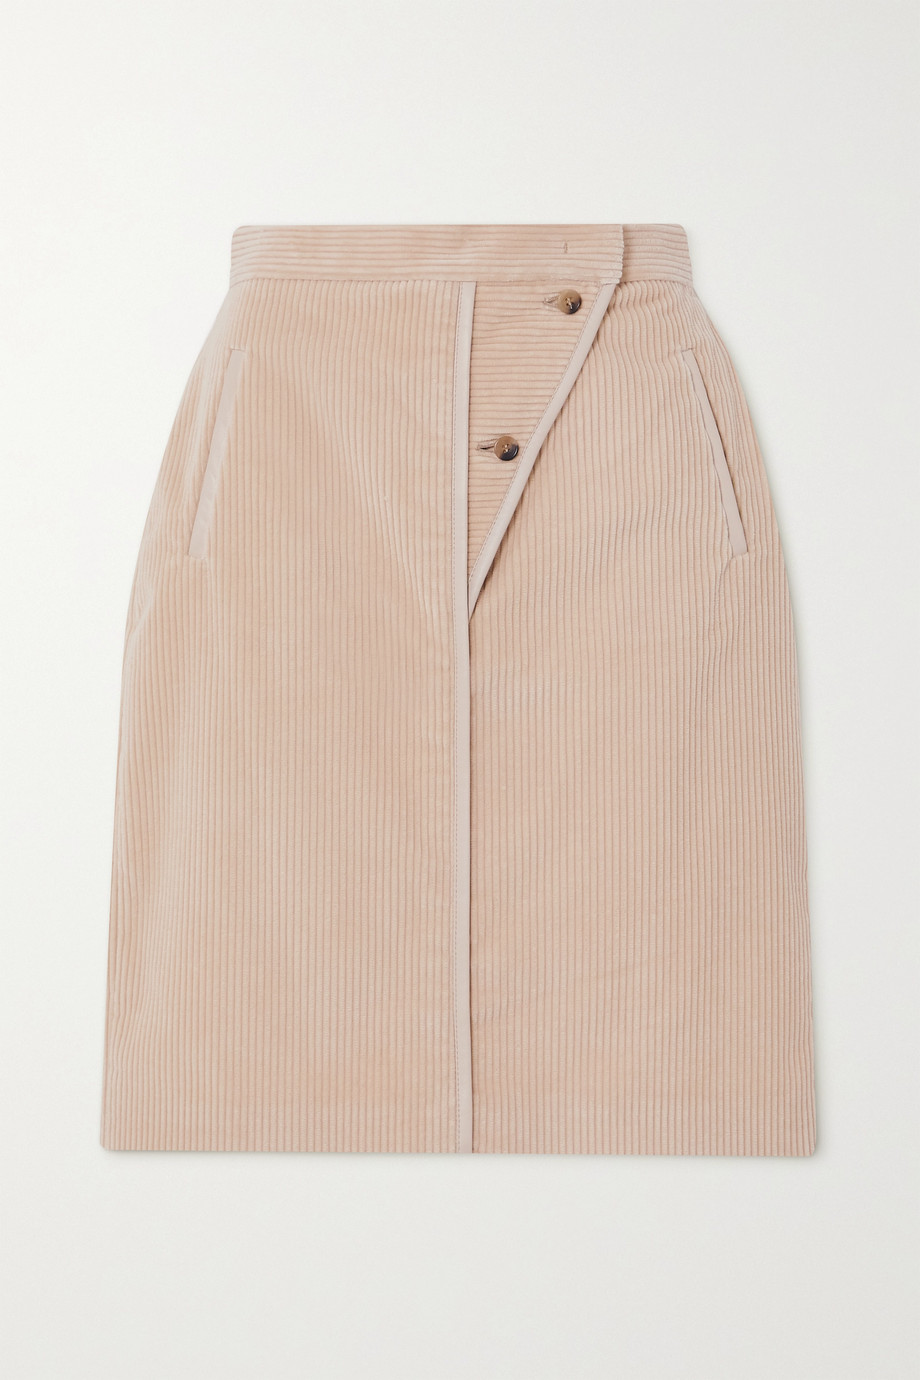 Max Mara Leather-trimmed cotton-corduroy skirt